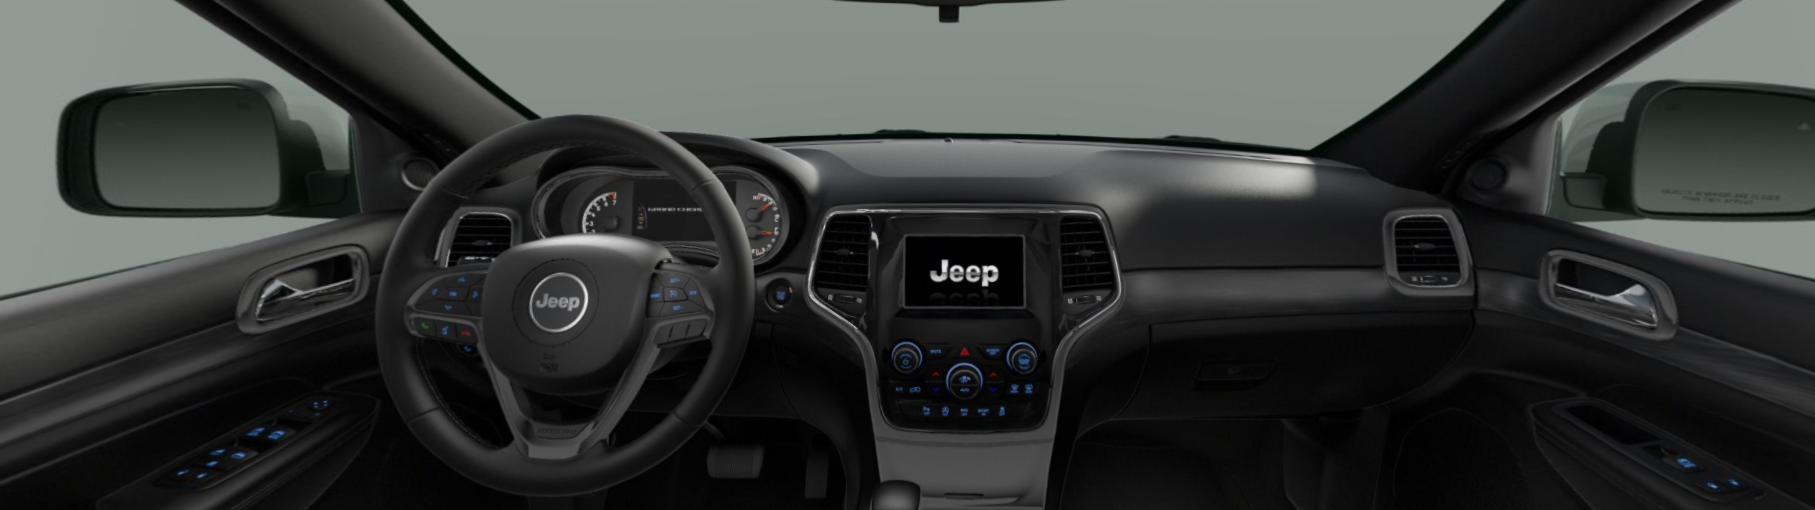 2020 Jeep Grand Cherokee Laredo Front Interior Dash Picture